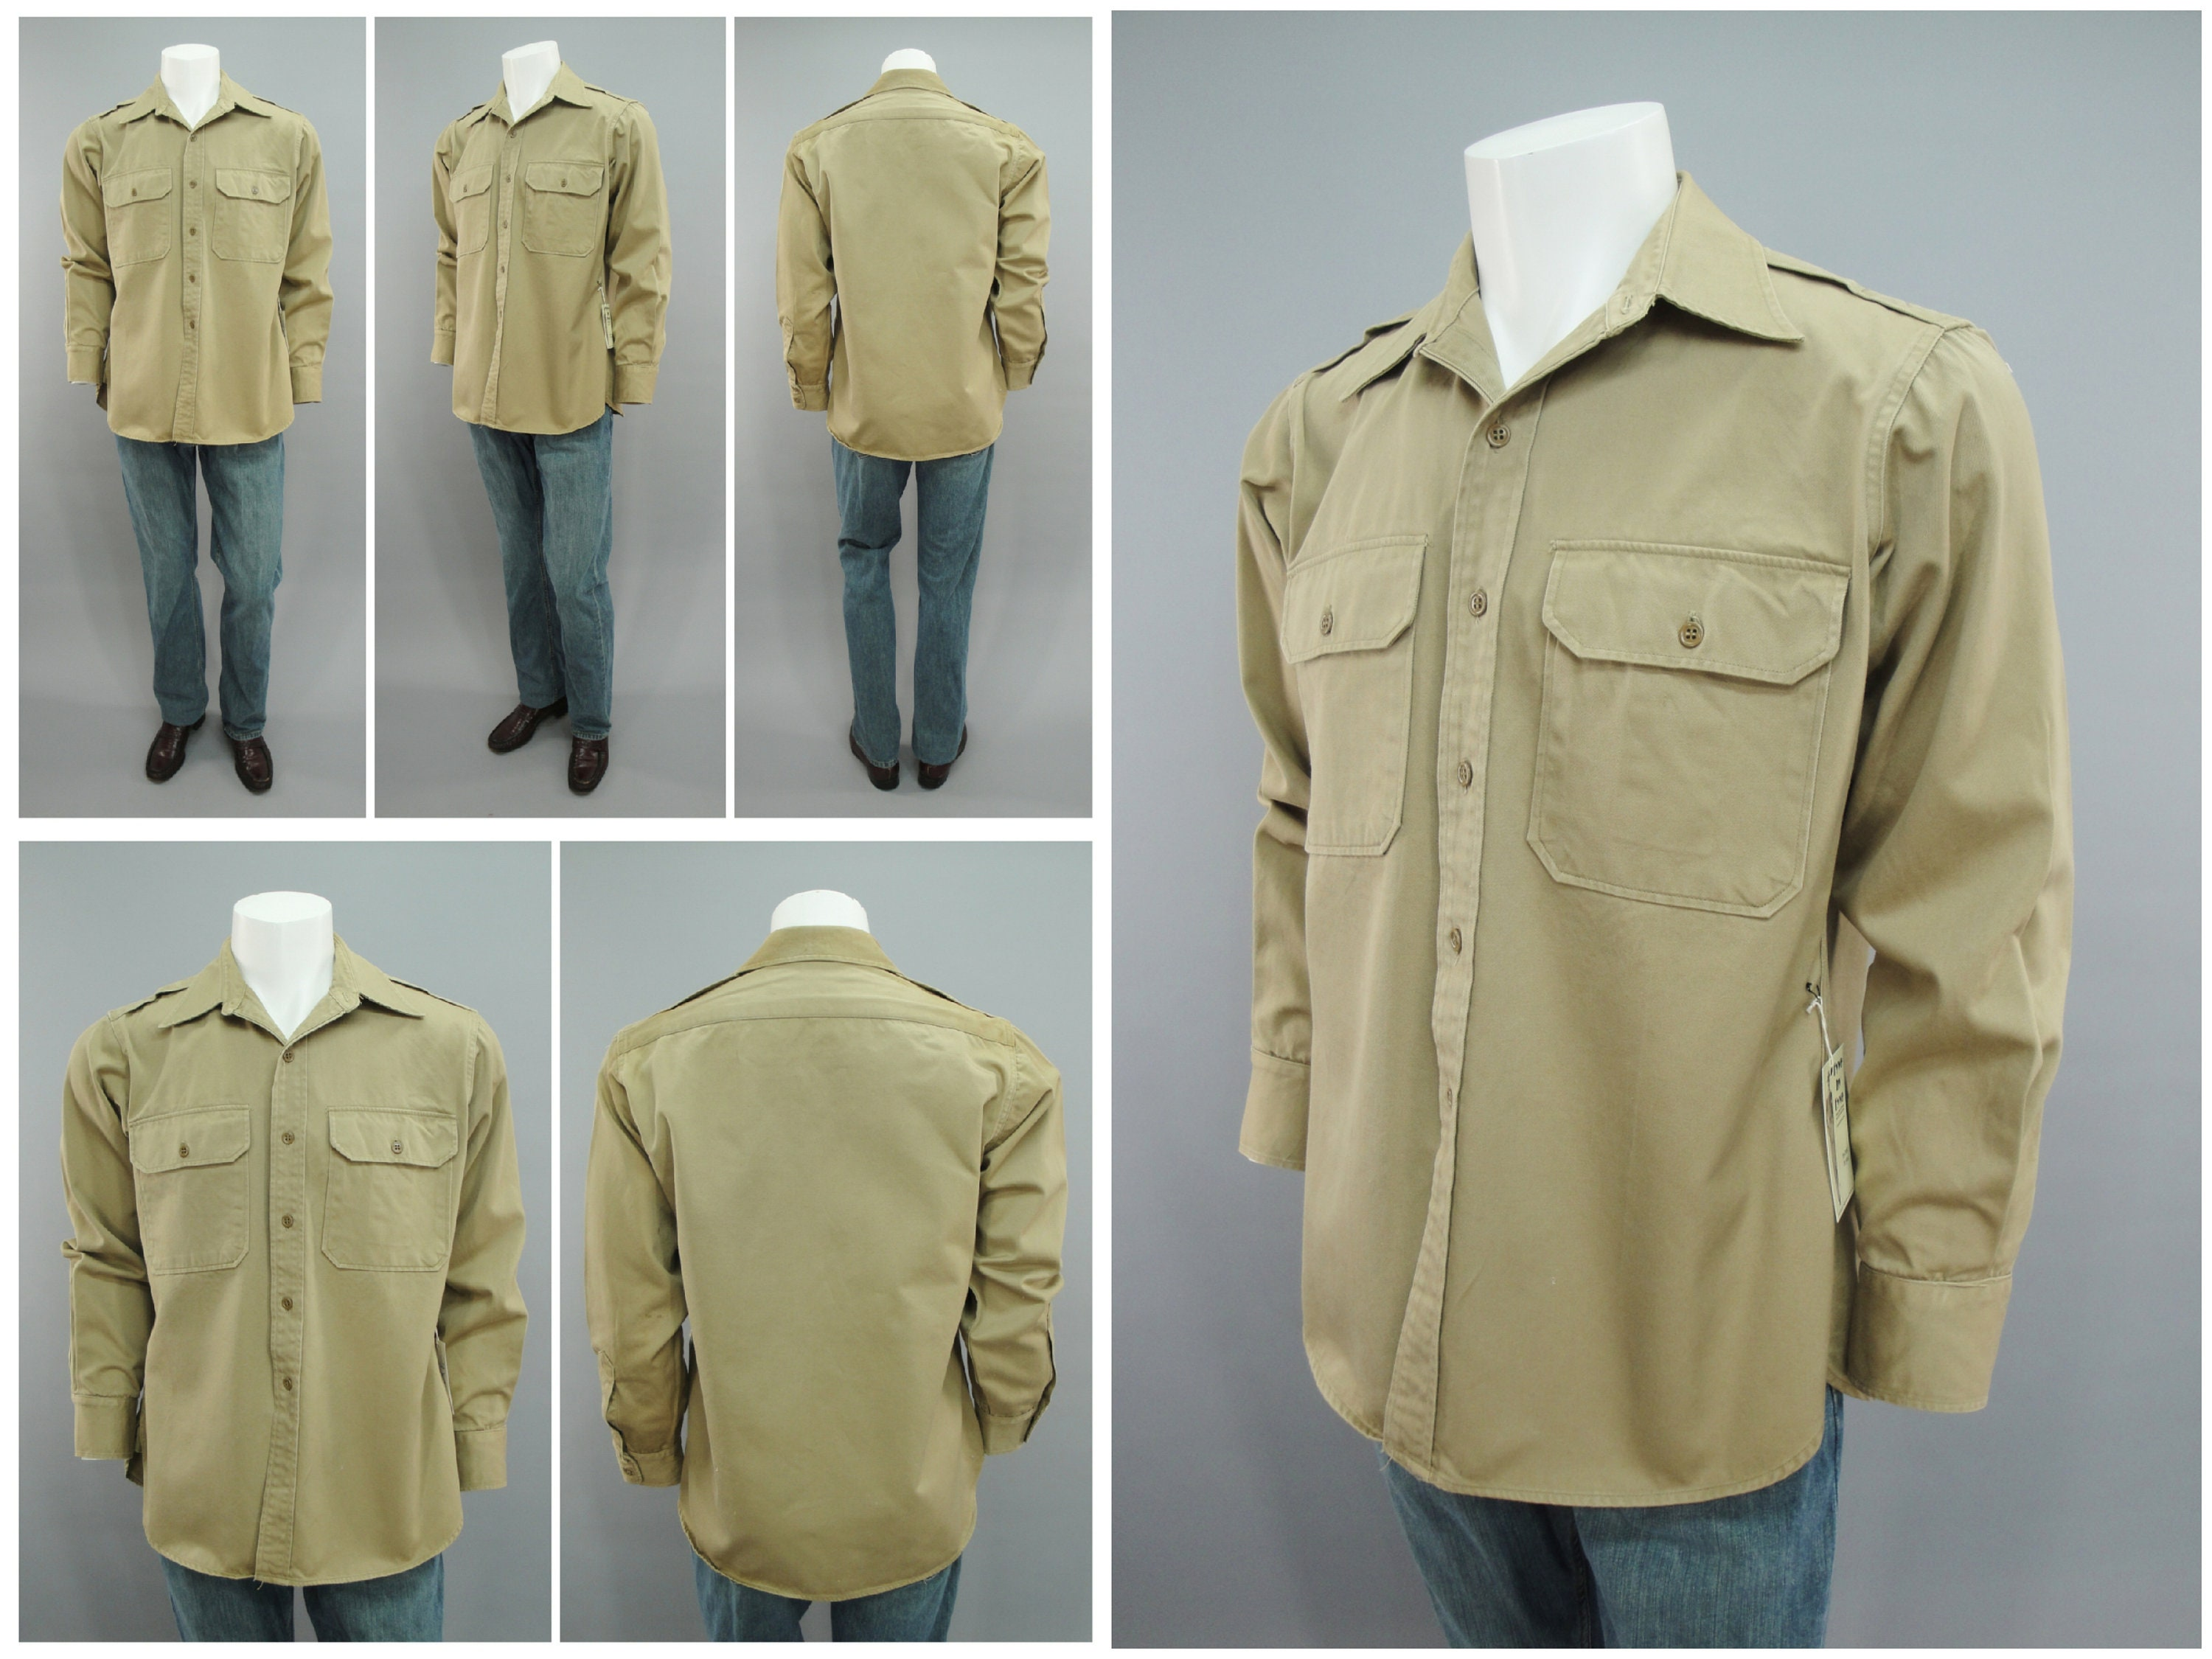 1940s Men's Shirts, Sweaters, Vests 1940S Original Ww2 Vintage Us Army Tropical Service Khaki Cotton Tan Canvas Fawn Gi Uniform Shirt With Epaulettes, Mens Size Large 44 $0.00 AT vintagedancer.com